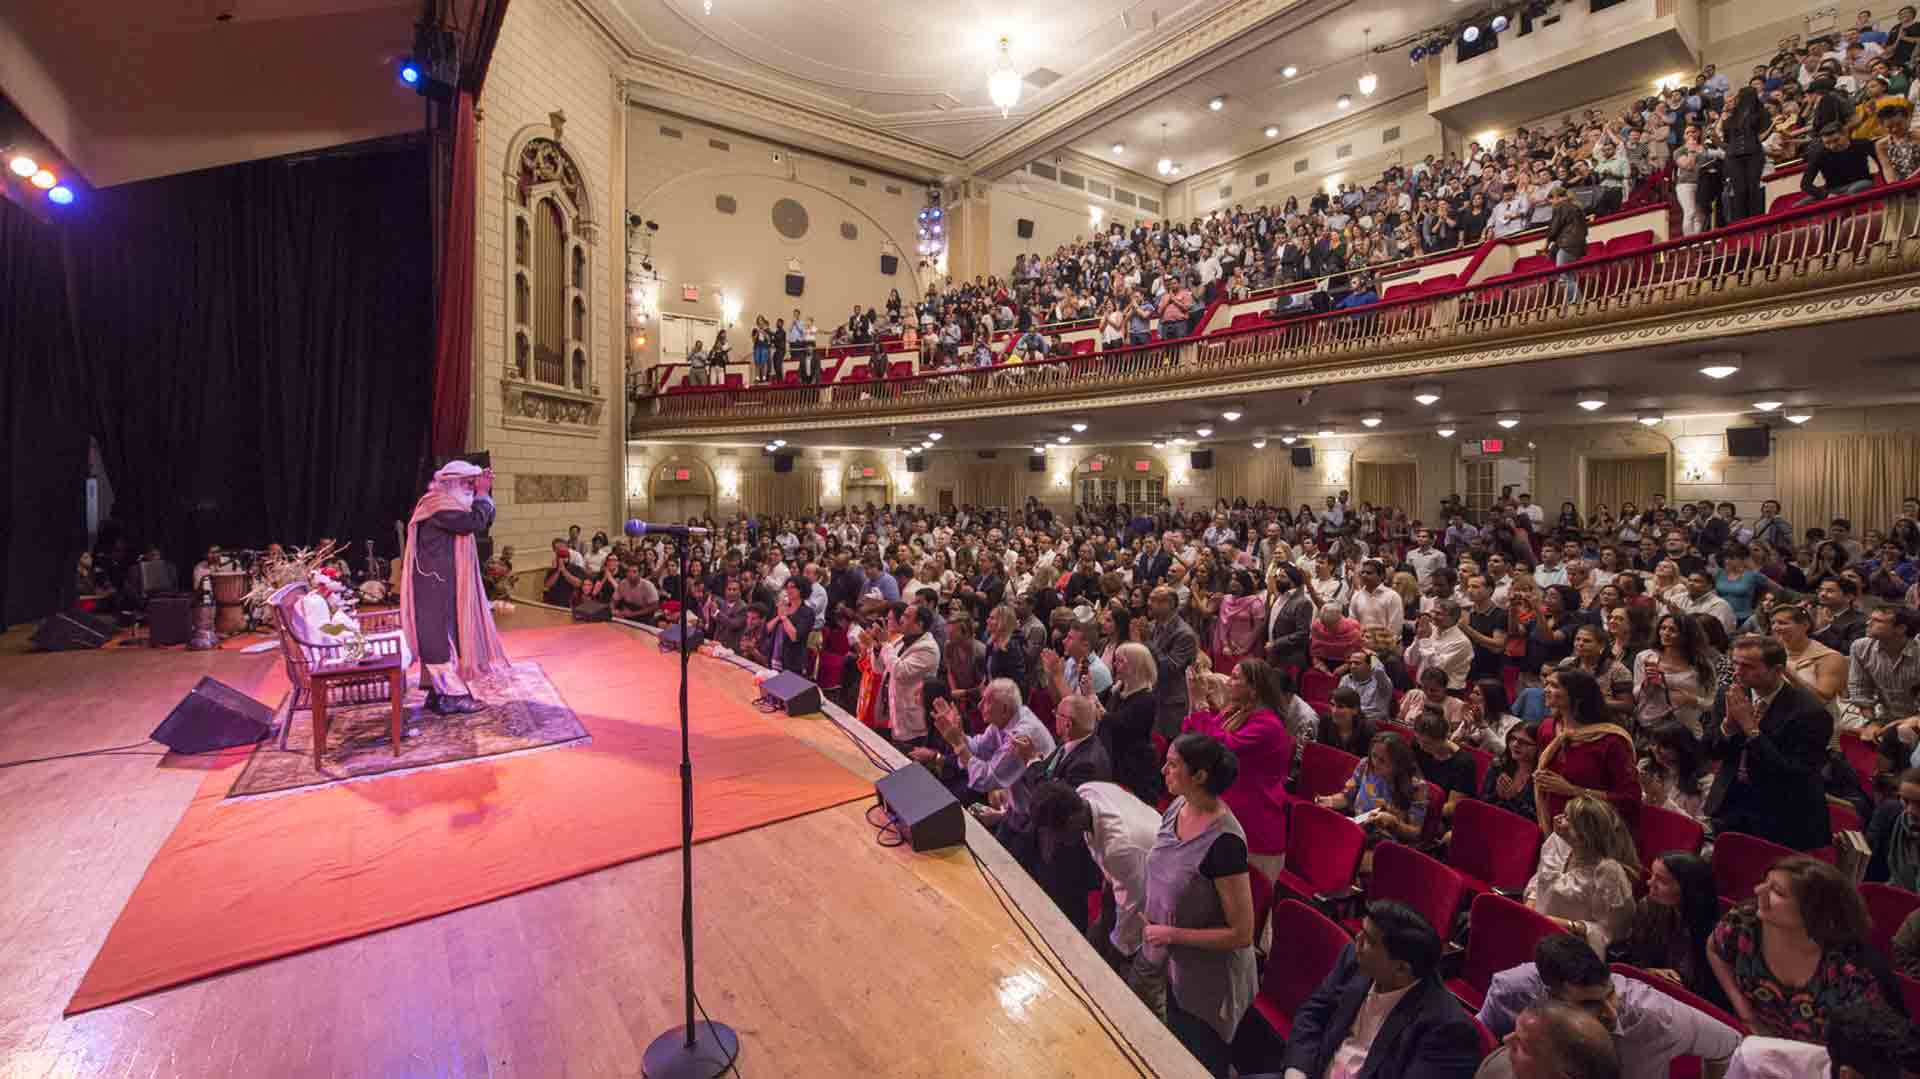 Event with Sadhguru at the historic Town Hall in New York City on September 20, 2016, the day of the book launch